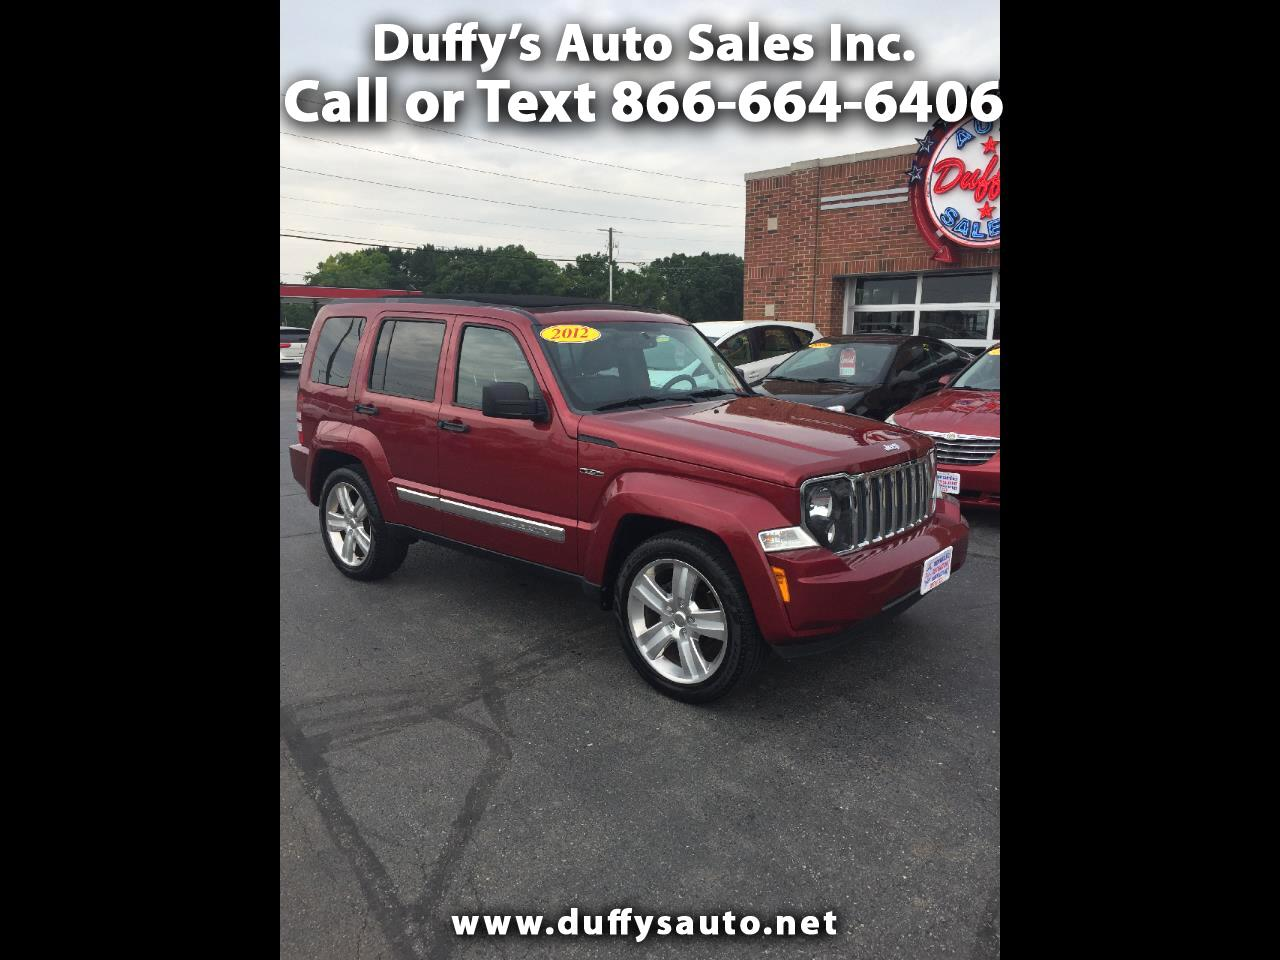 2012 Jeep Liberty 4WD Limited Jet Convertible